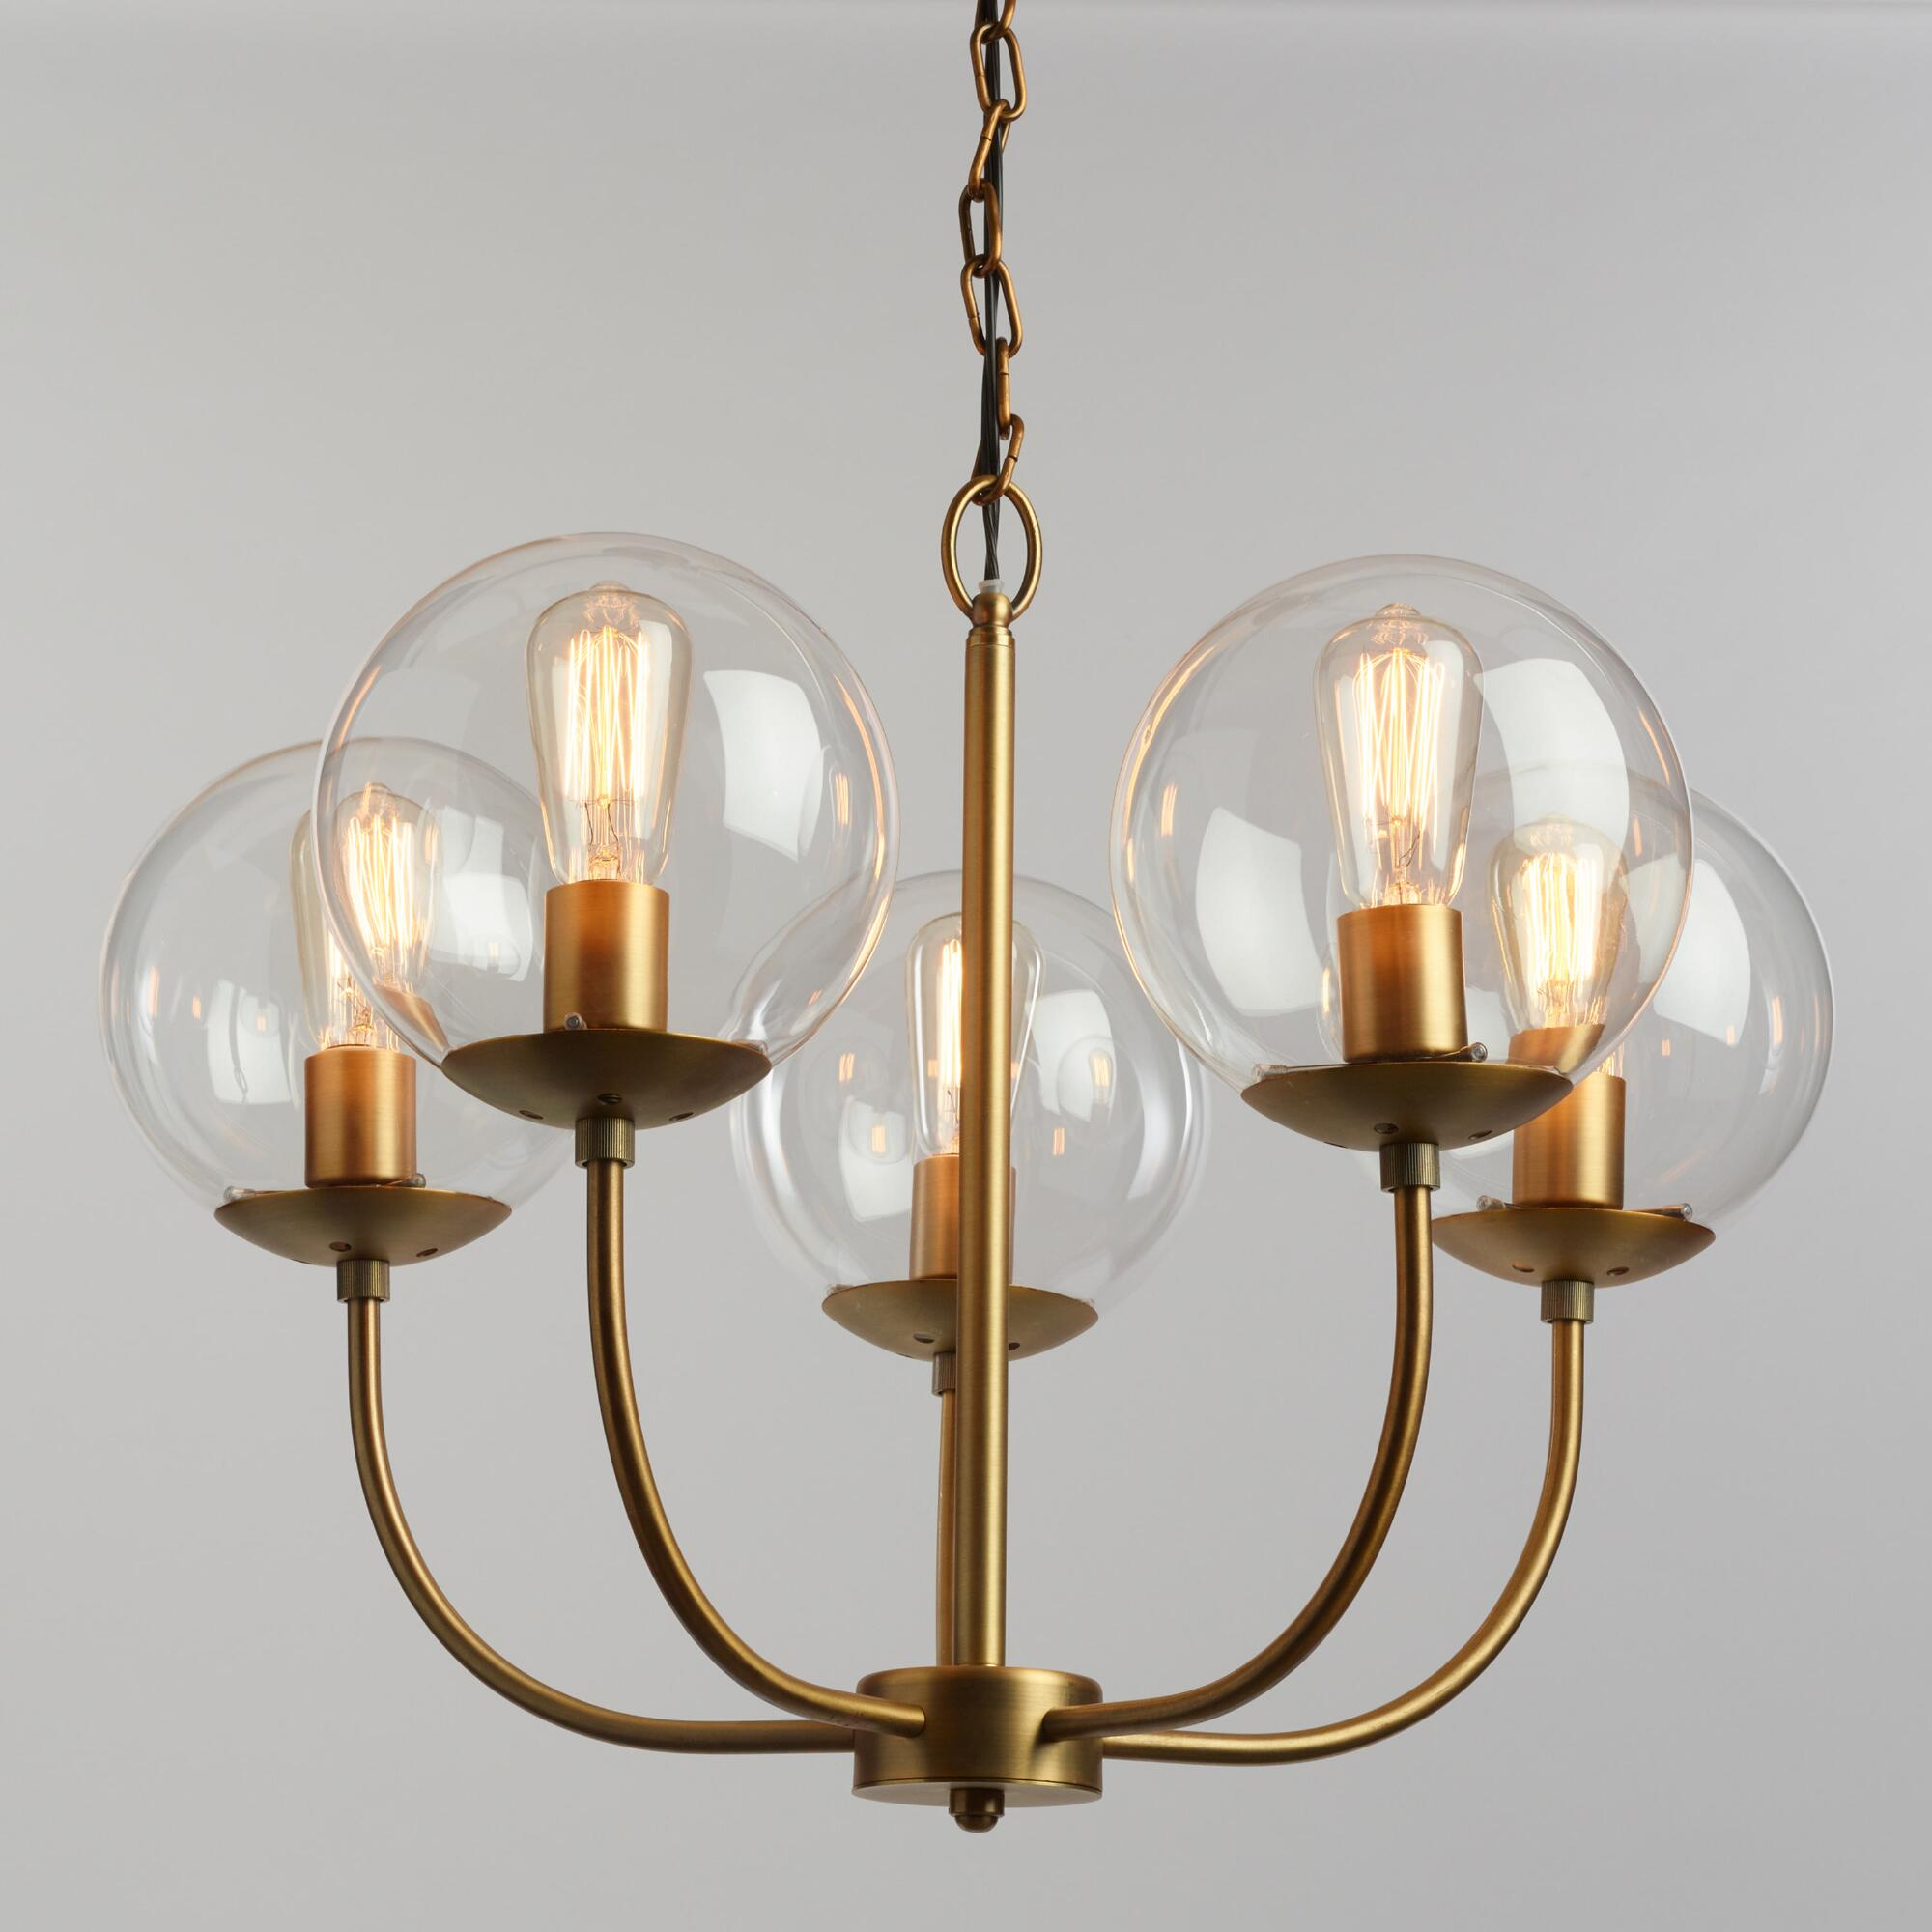 ceiling marquis stunning chandelier chr bresna led wf by waterford chrome light bathroom pendant